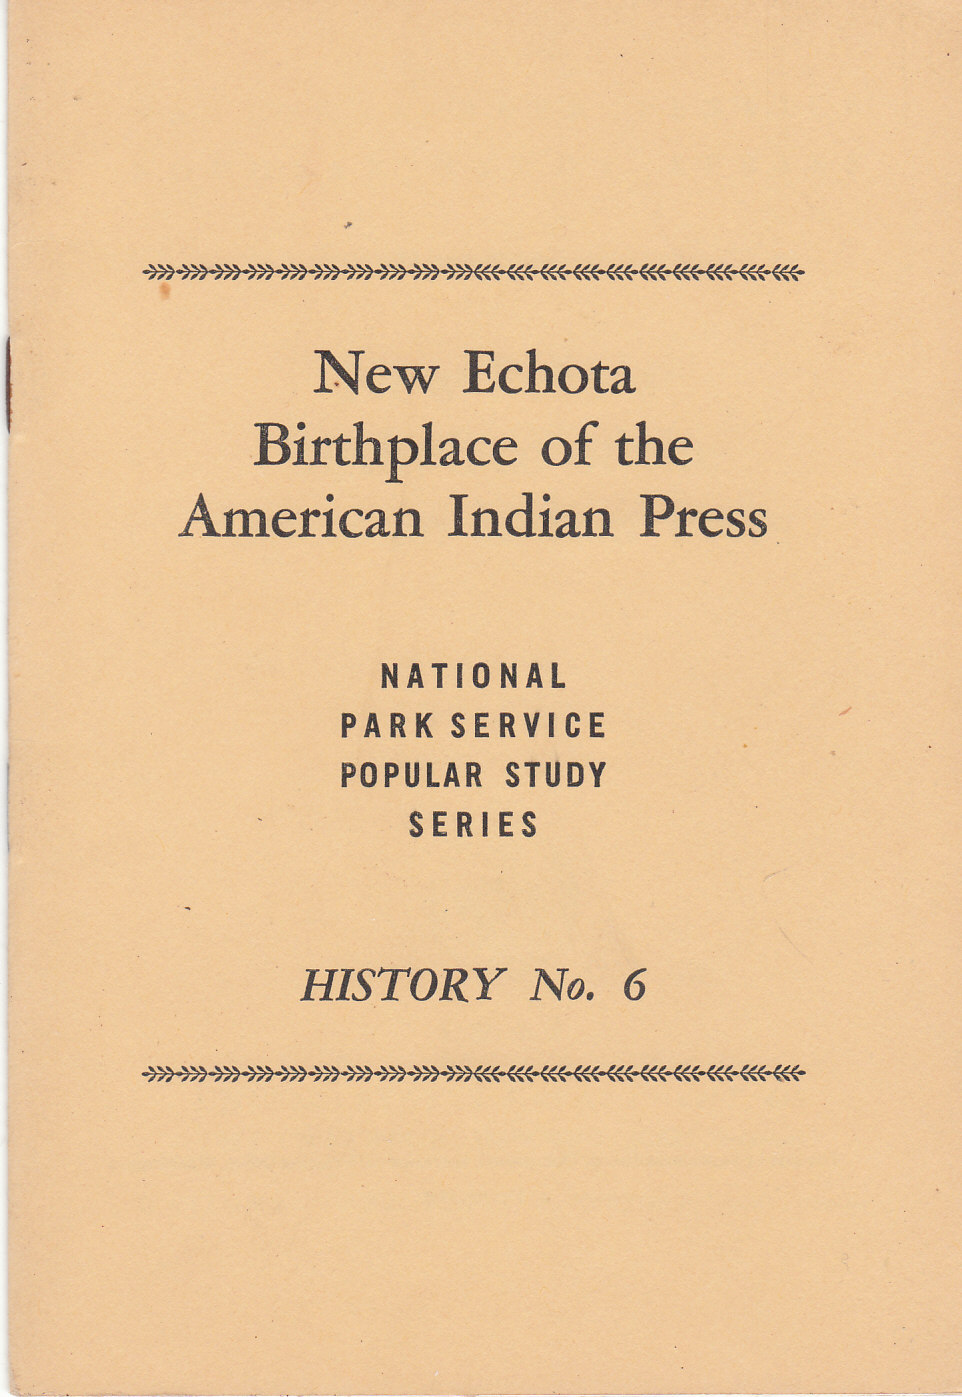 Image for New Echota Birthplace of the American Indian Press